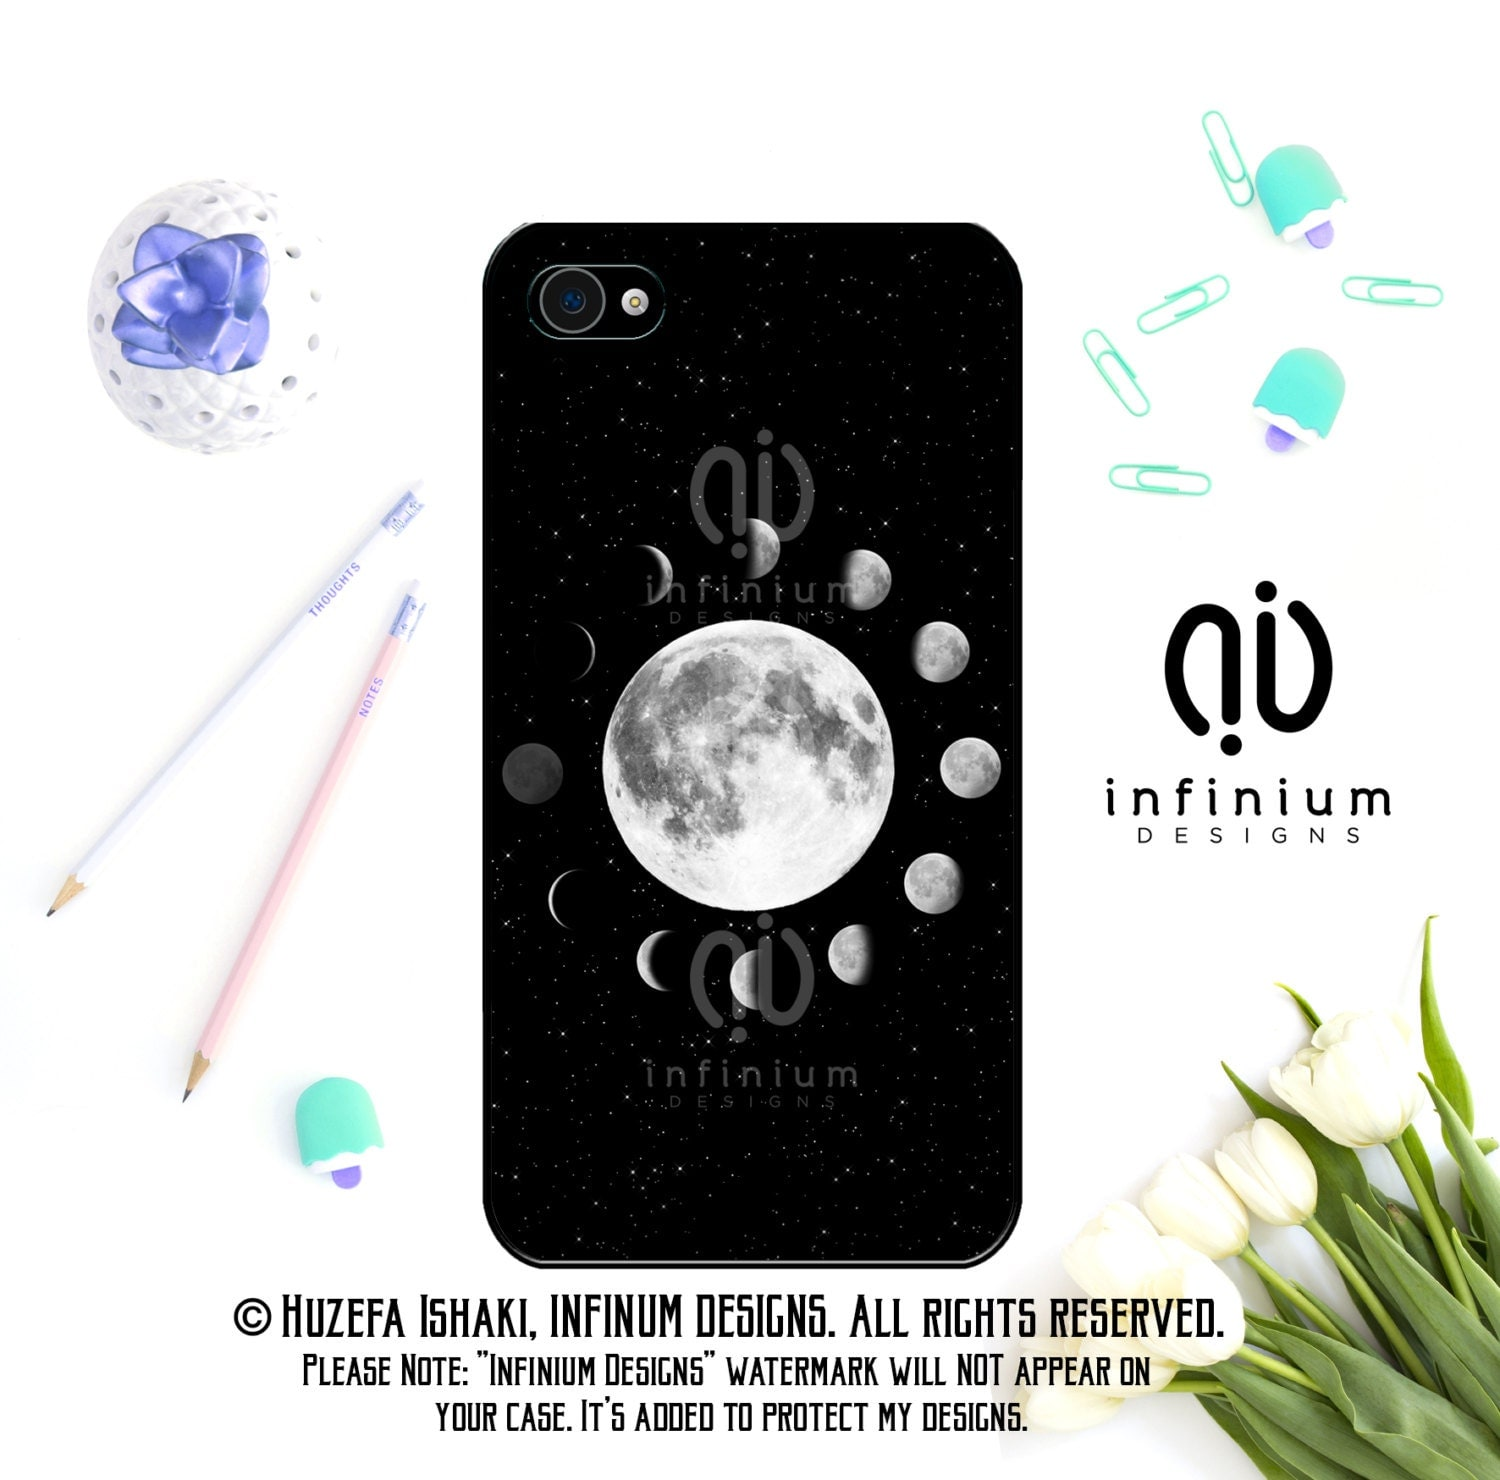 Lunar Moon Phases Case For iPhone 6S iPhone SE iPhone 5 iPod Touch 6 iPhone 6 Plus iPhone 6 iPhone 5S  iPhone 5C